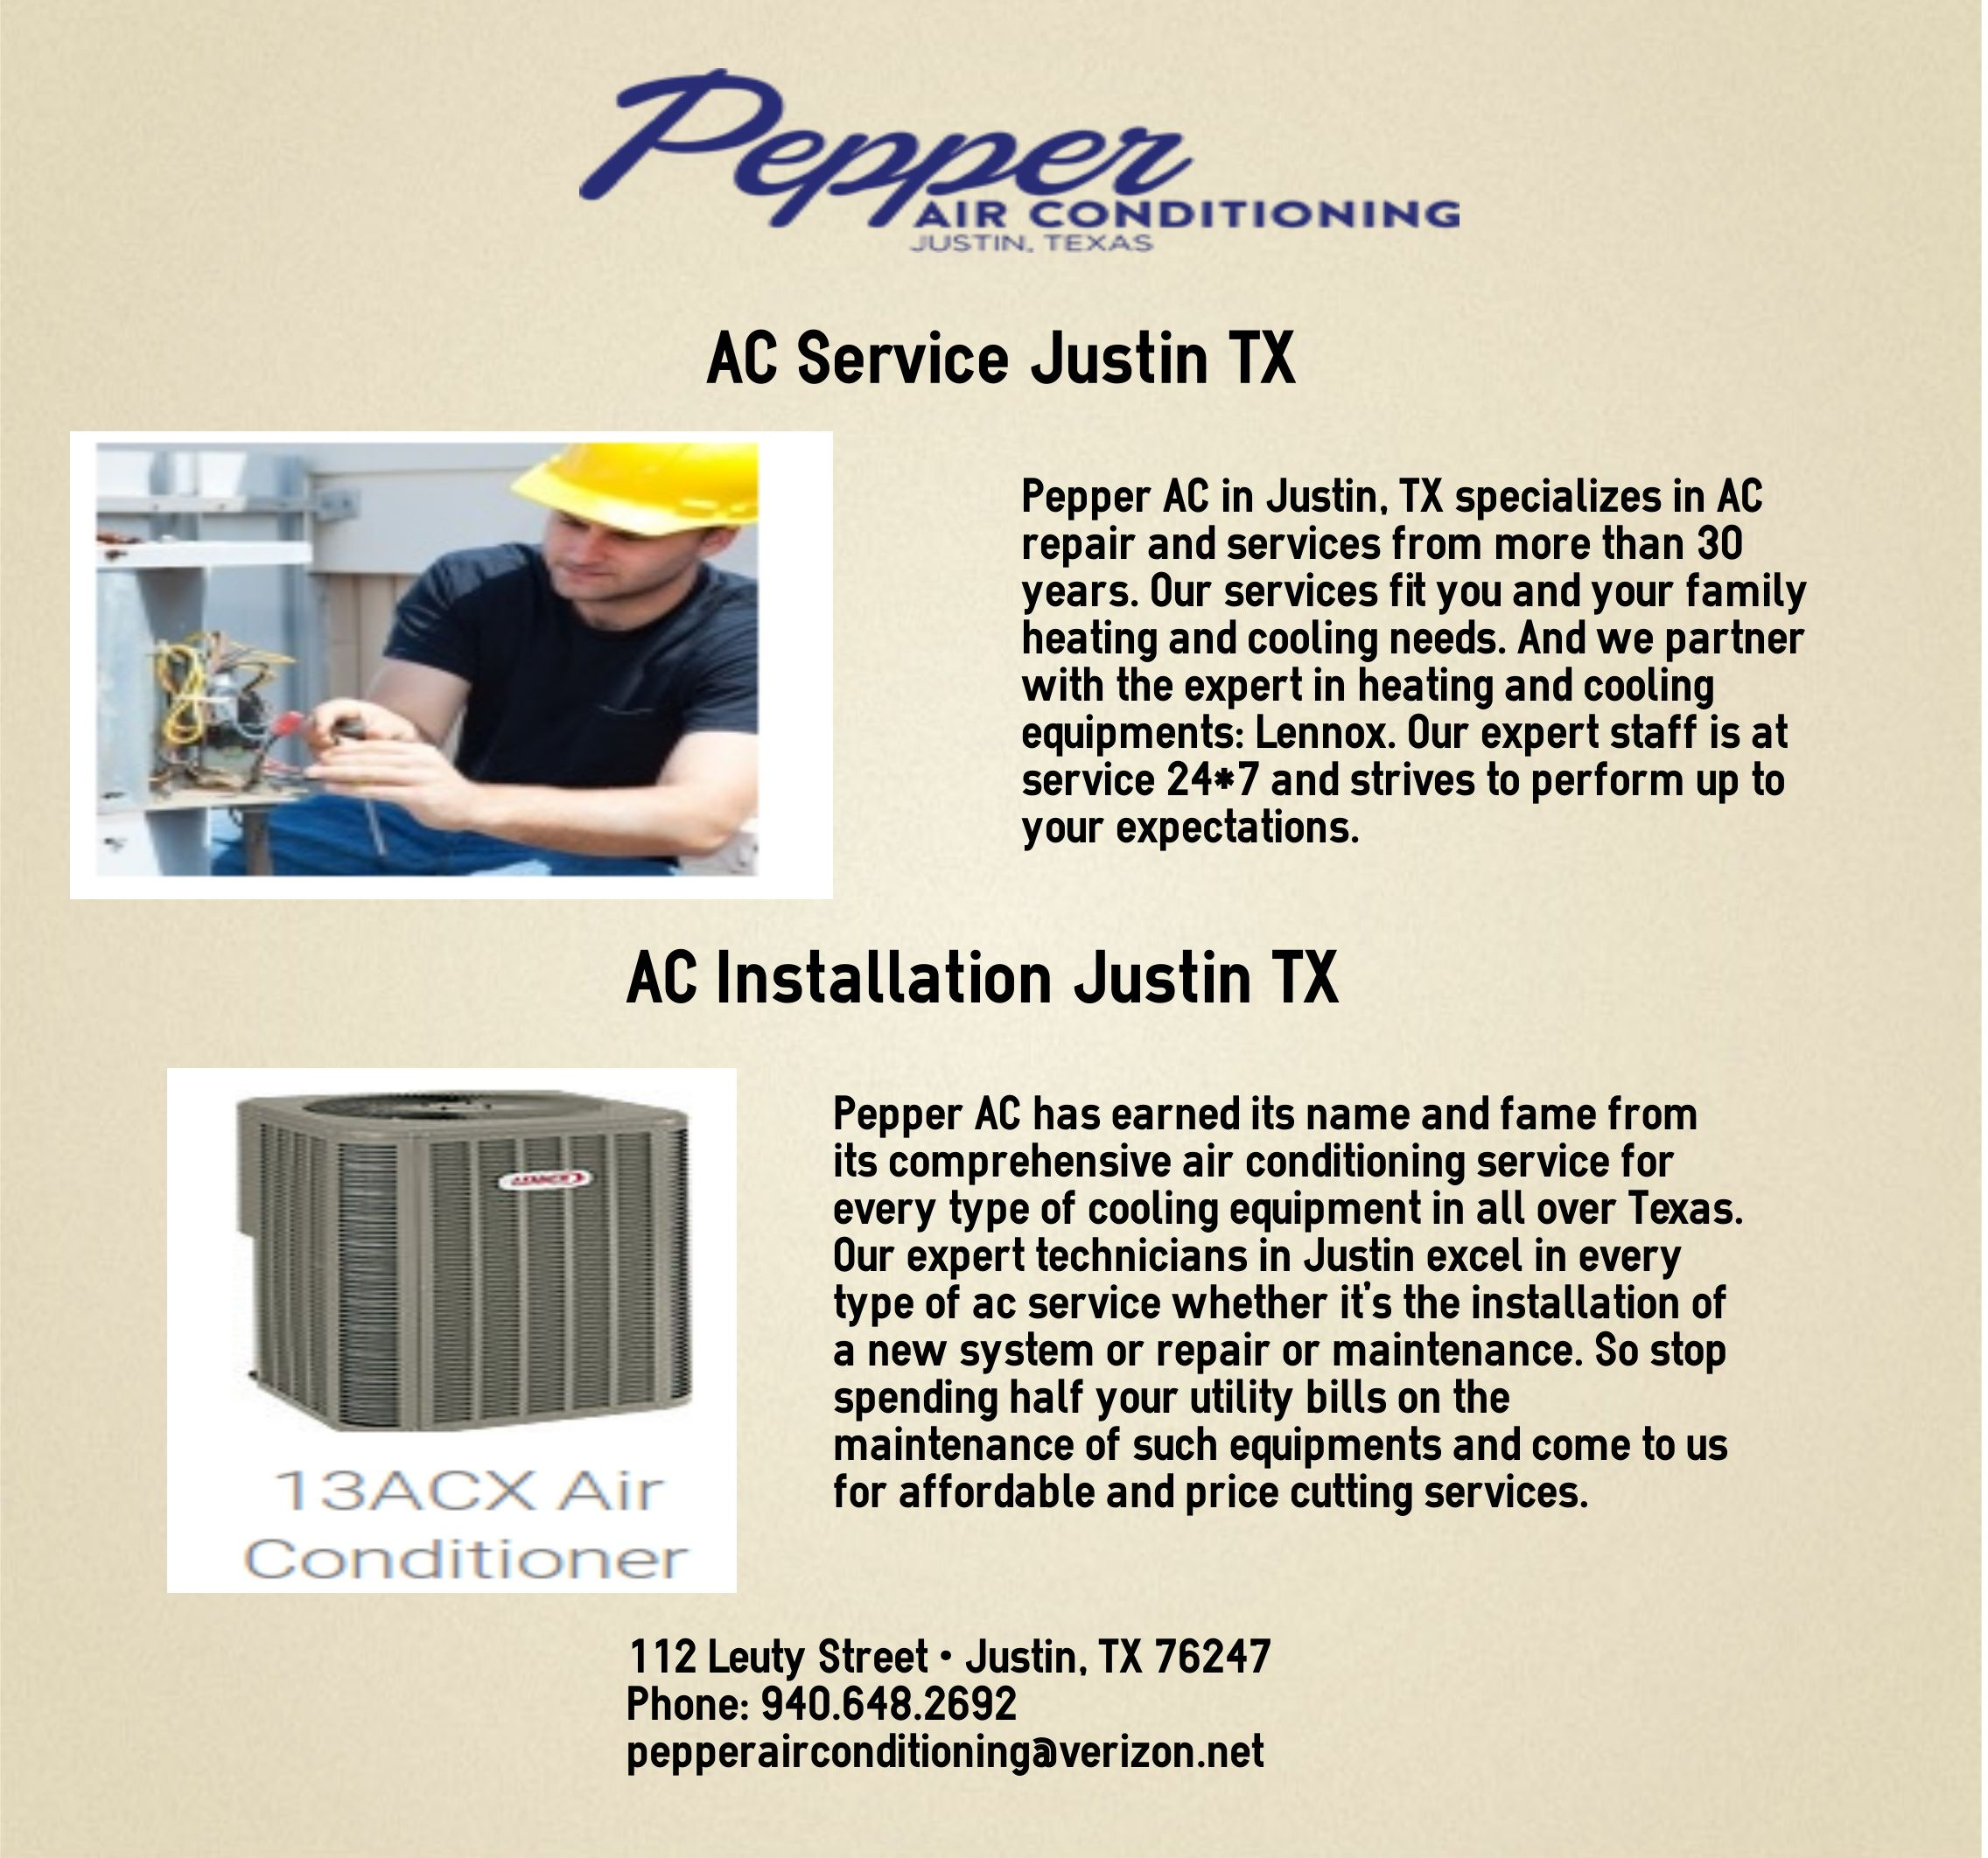 Pepper Ac In Justin Tx Specializes In Ac Repair And Services From More Than 30 Years Air Conditioning Services 30 Years Heating Cooling